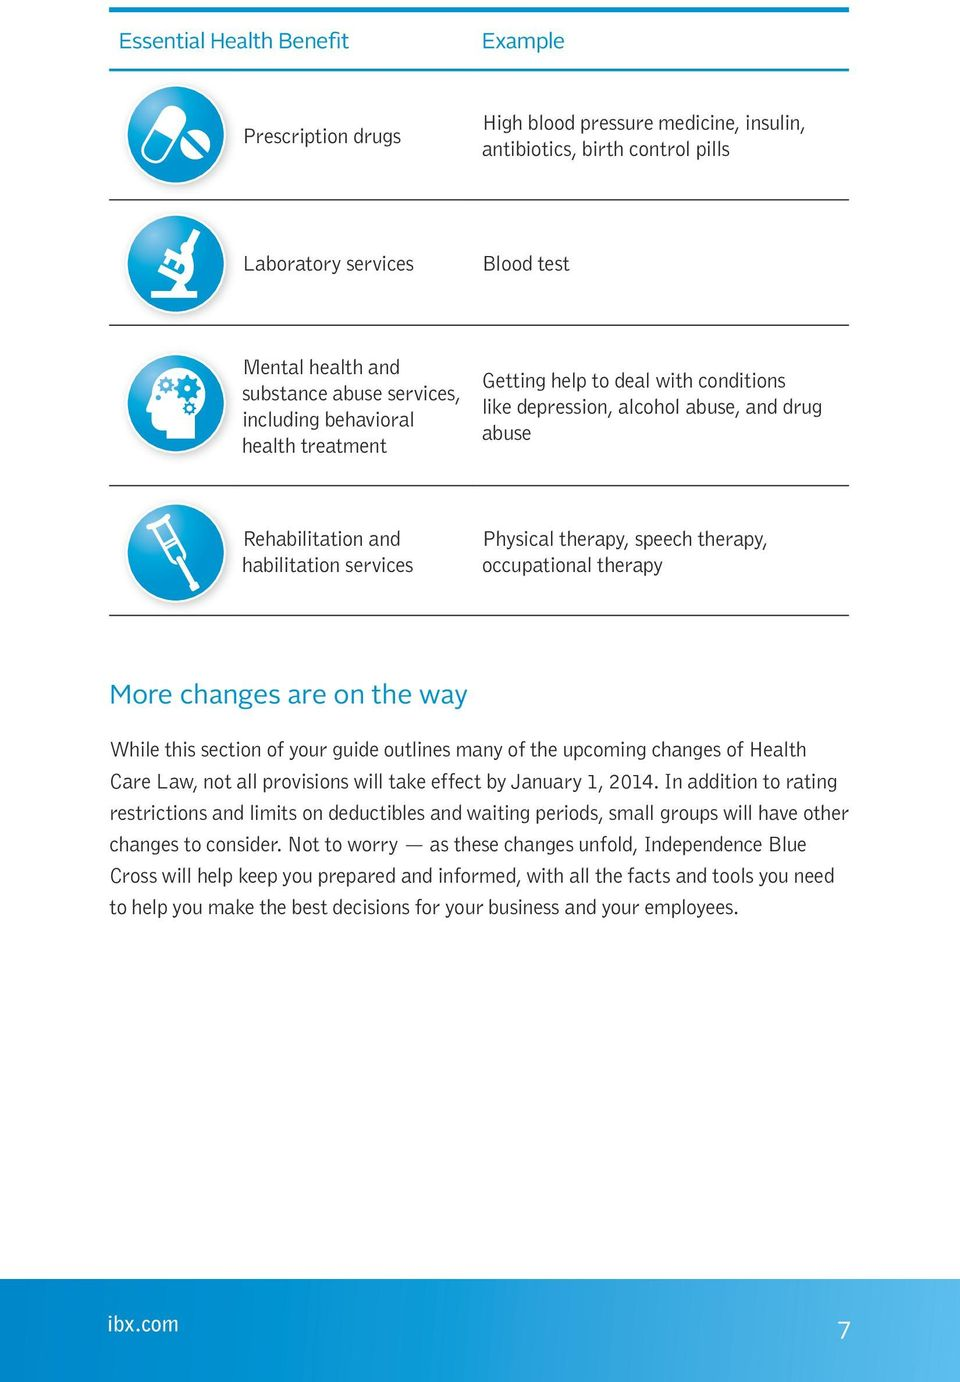 occupational therapy More changes are on the way While this section of your guide outlines many of the upcoming changes of Health Care Law, not all provisions will take effect by January 1, 2014.